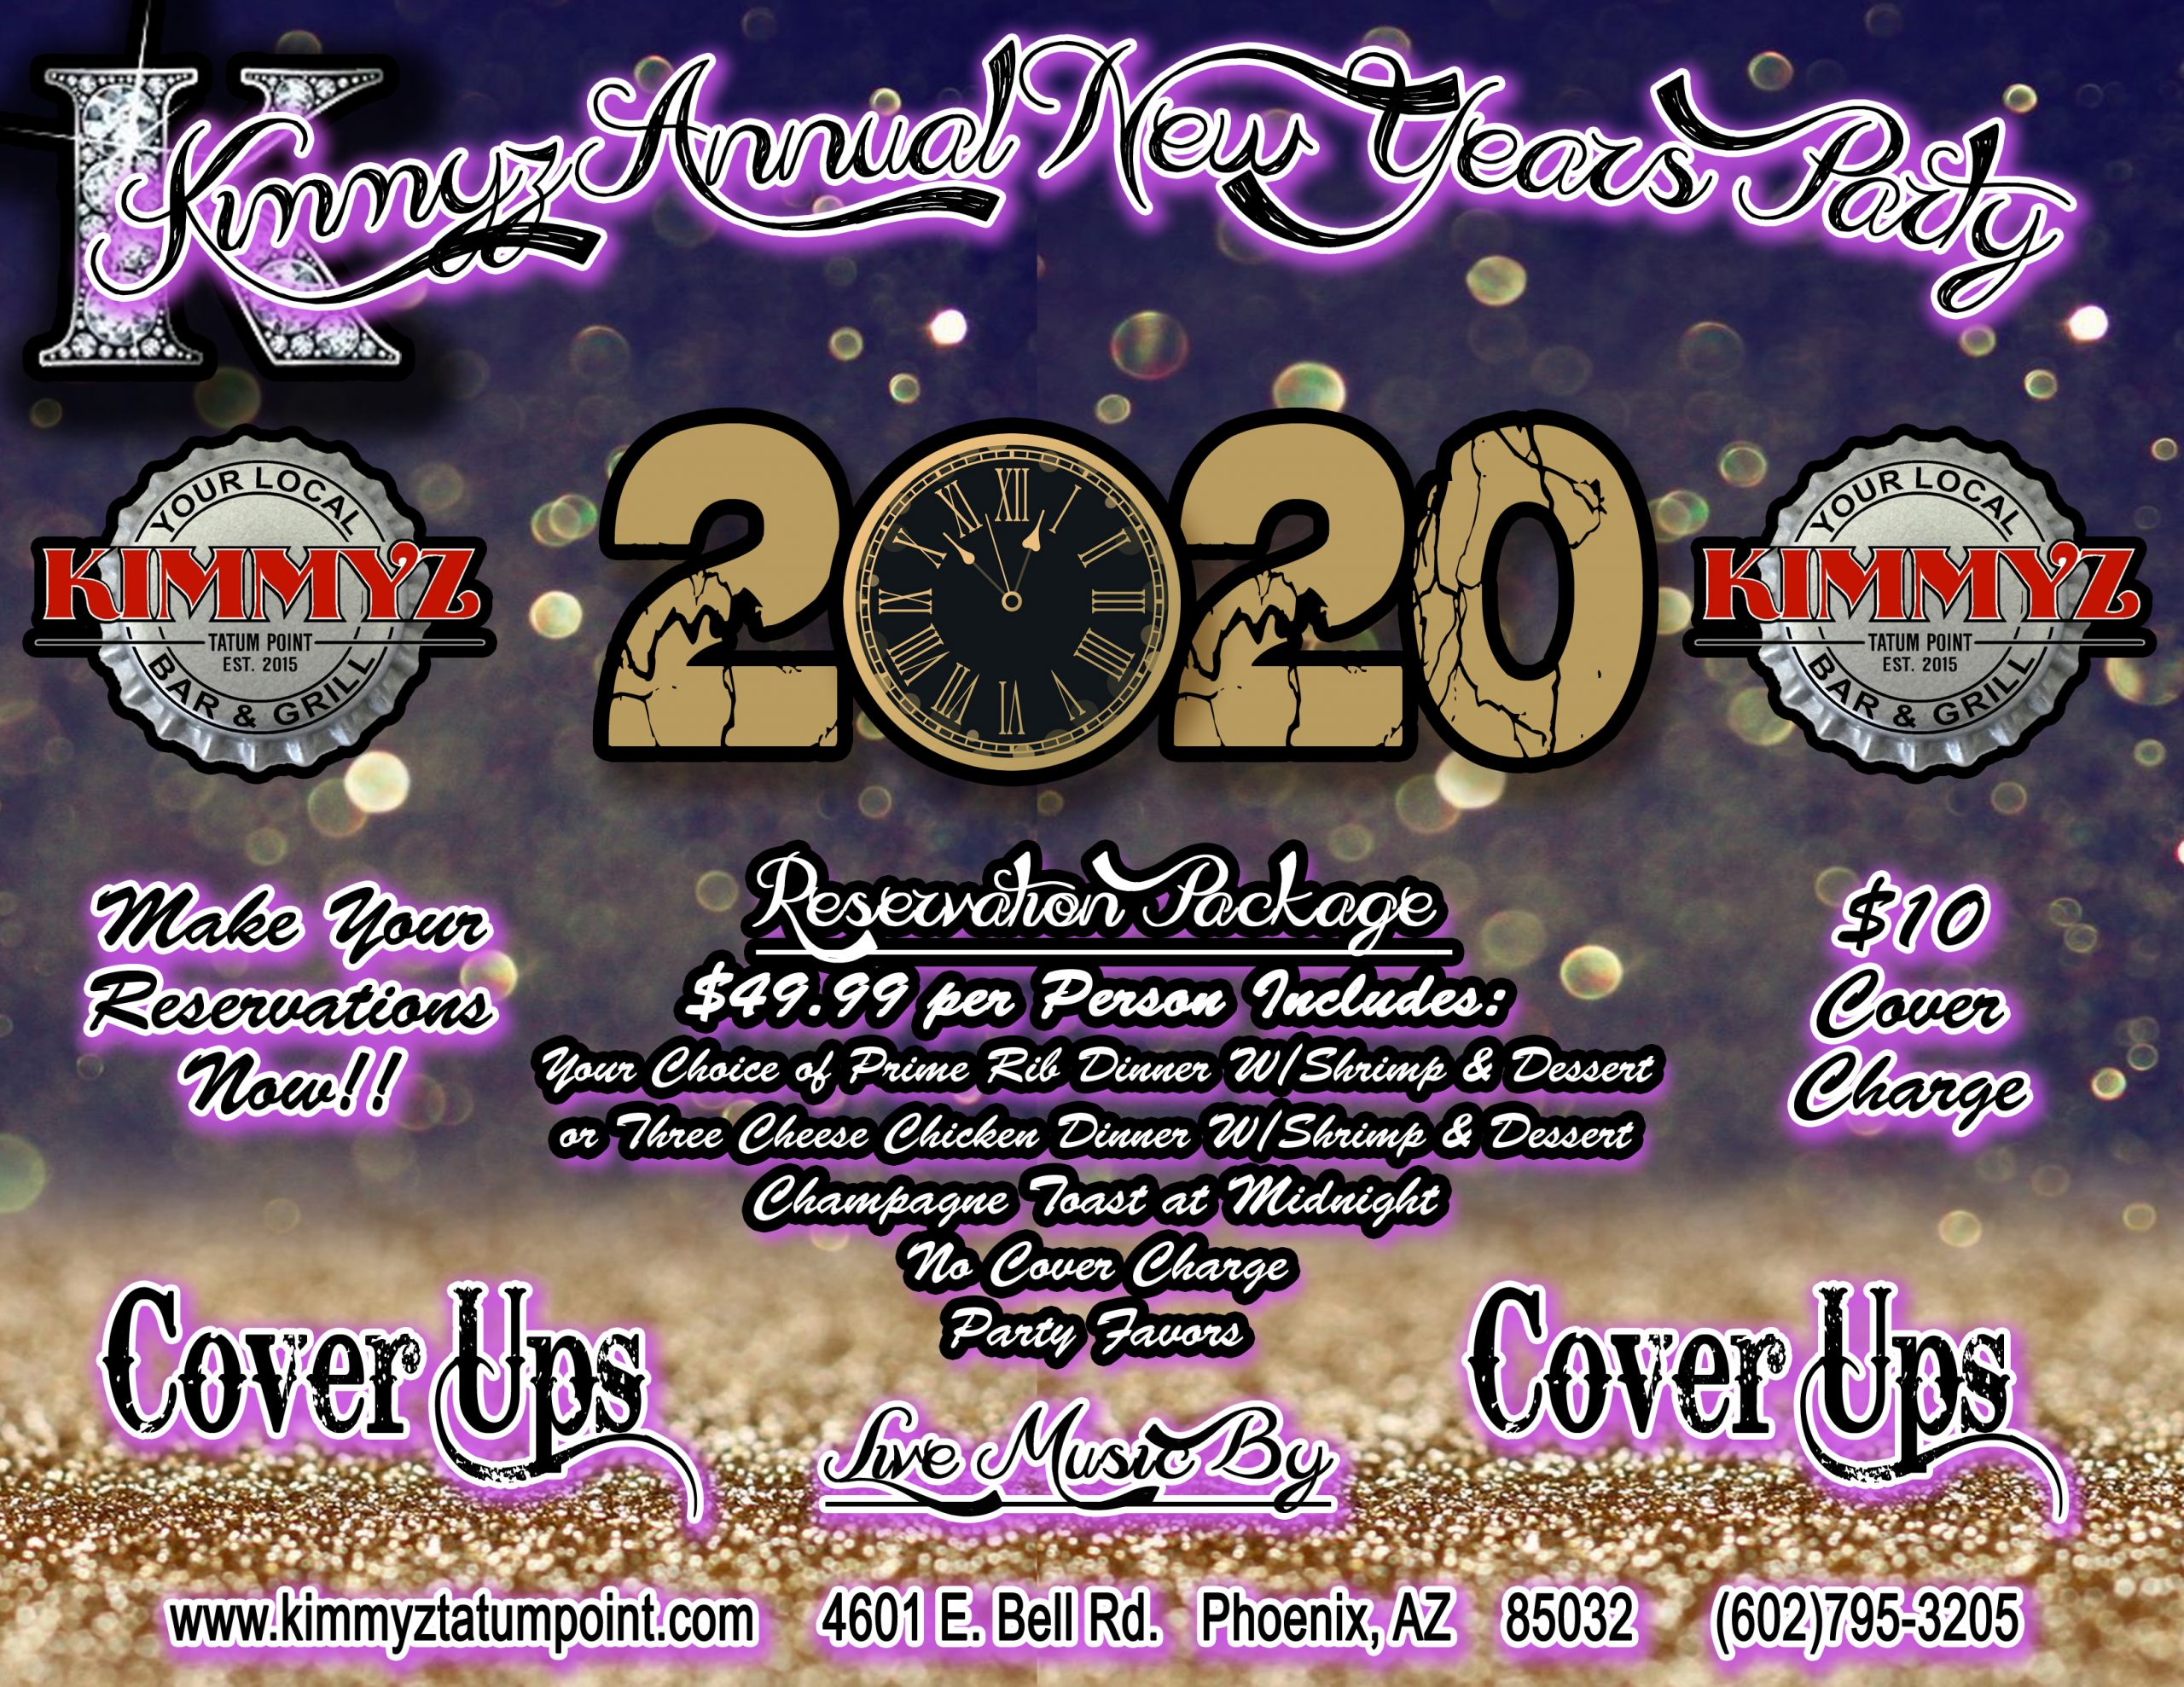 New Years Party 2020 Phoenix - Kimmyz Tatum Point